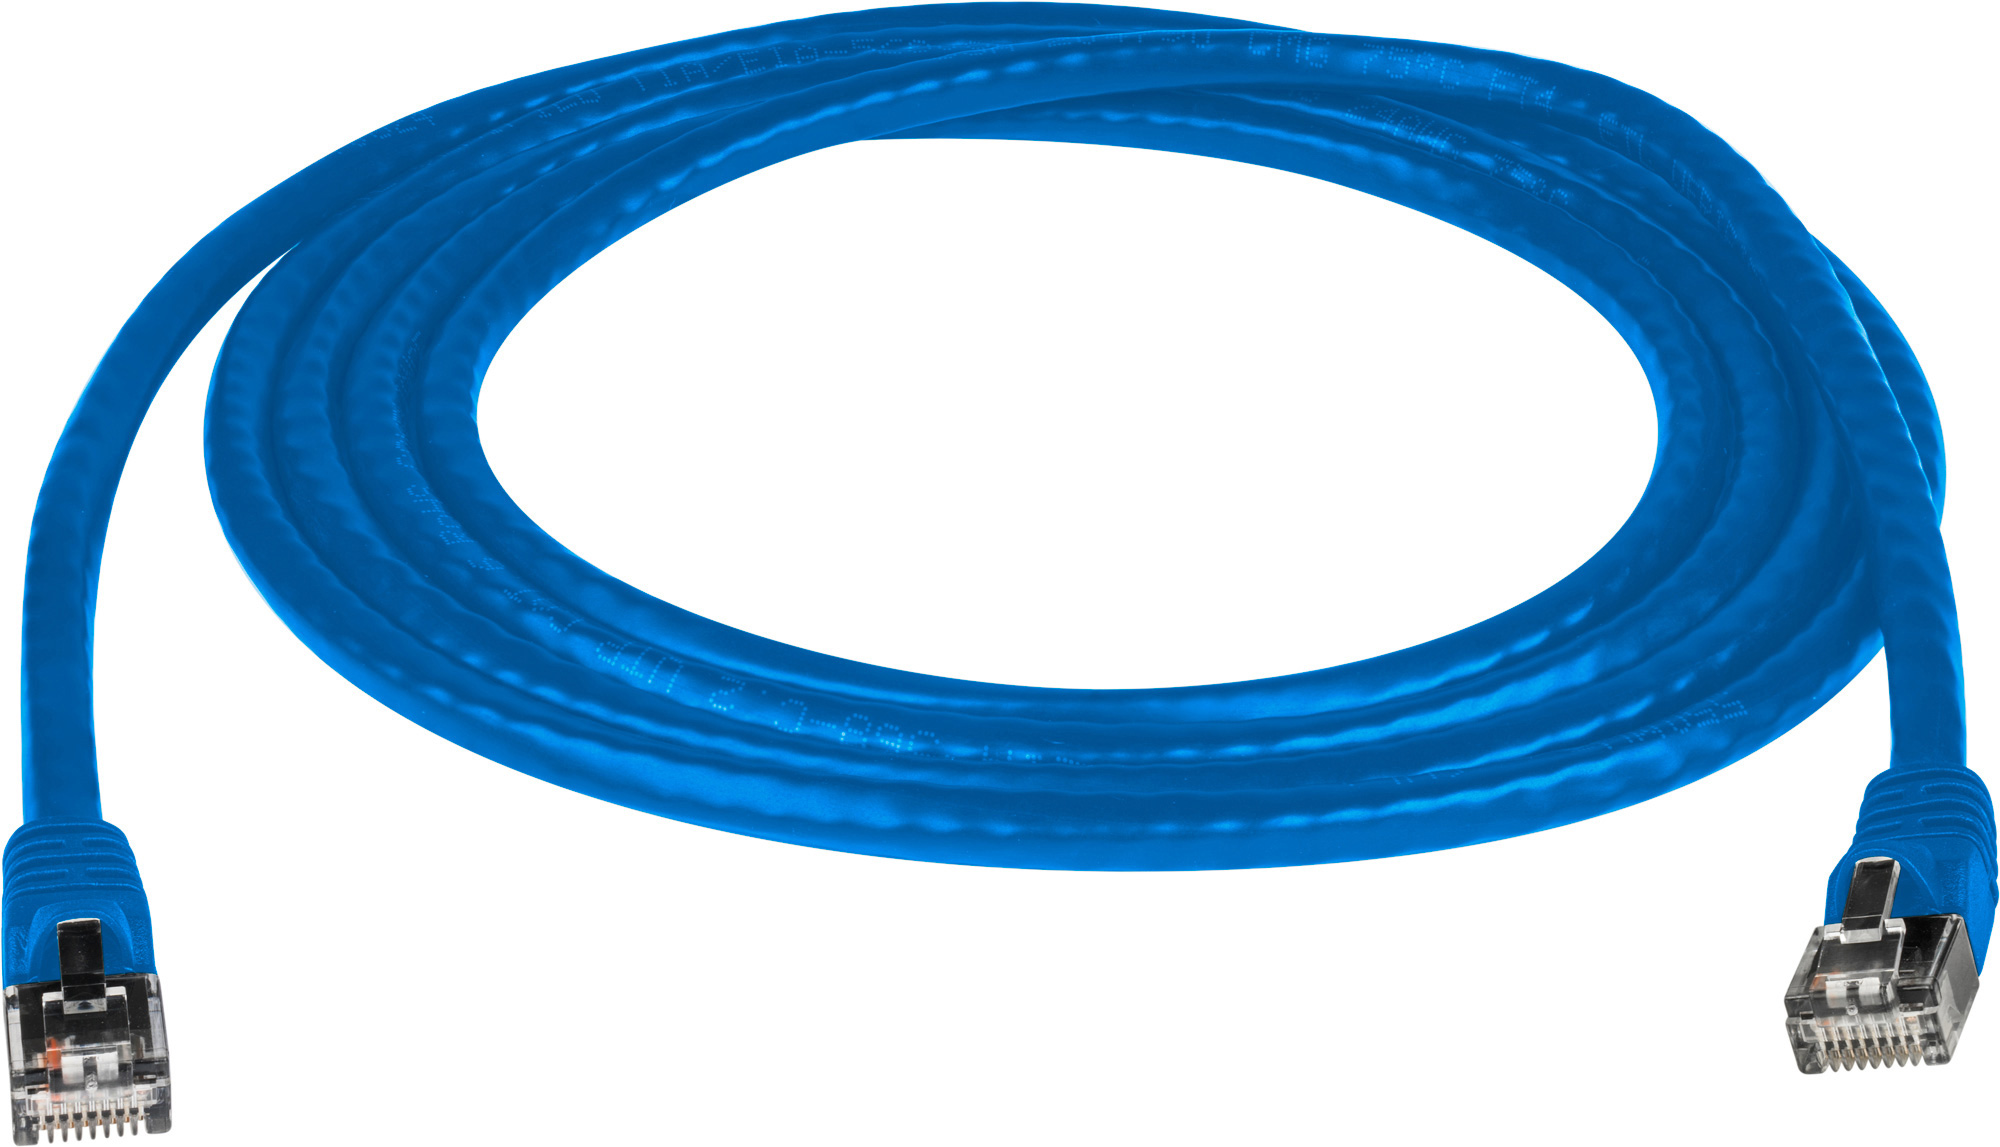 Molded Utp Cat6 Patch Cable 24awg 50u 15 Foot Blue